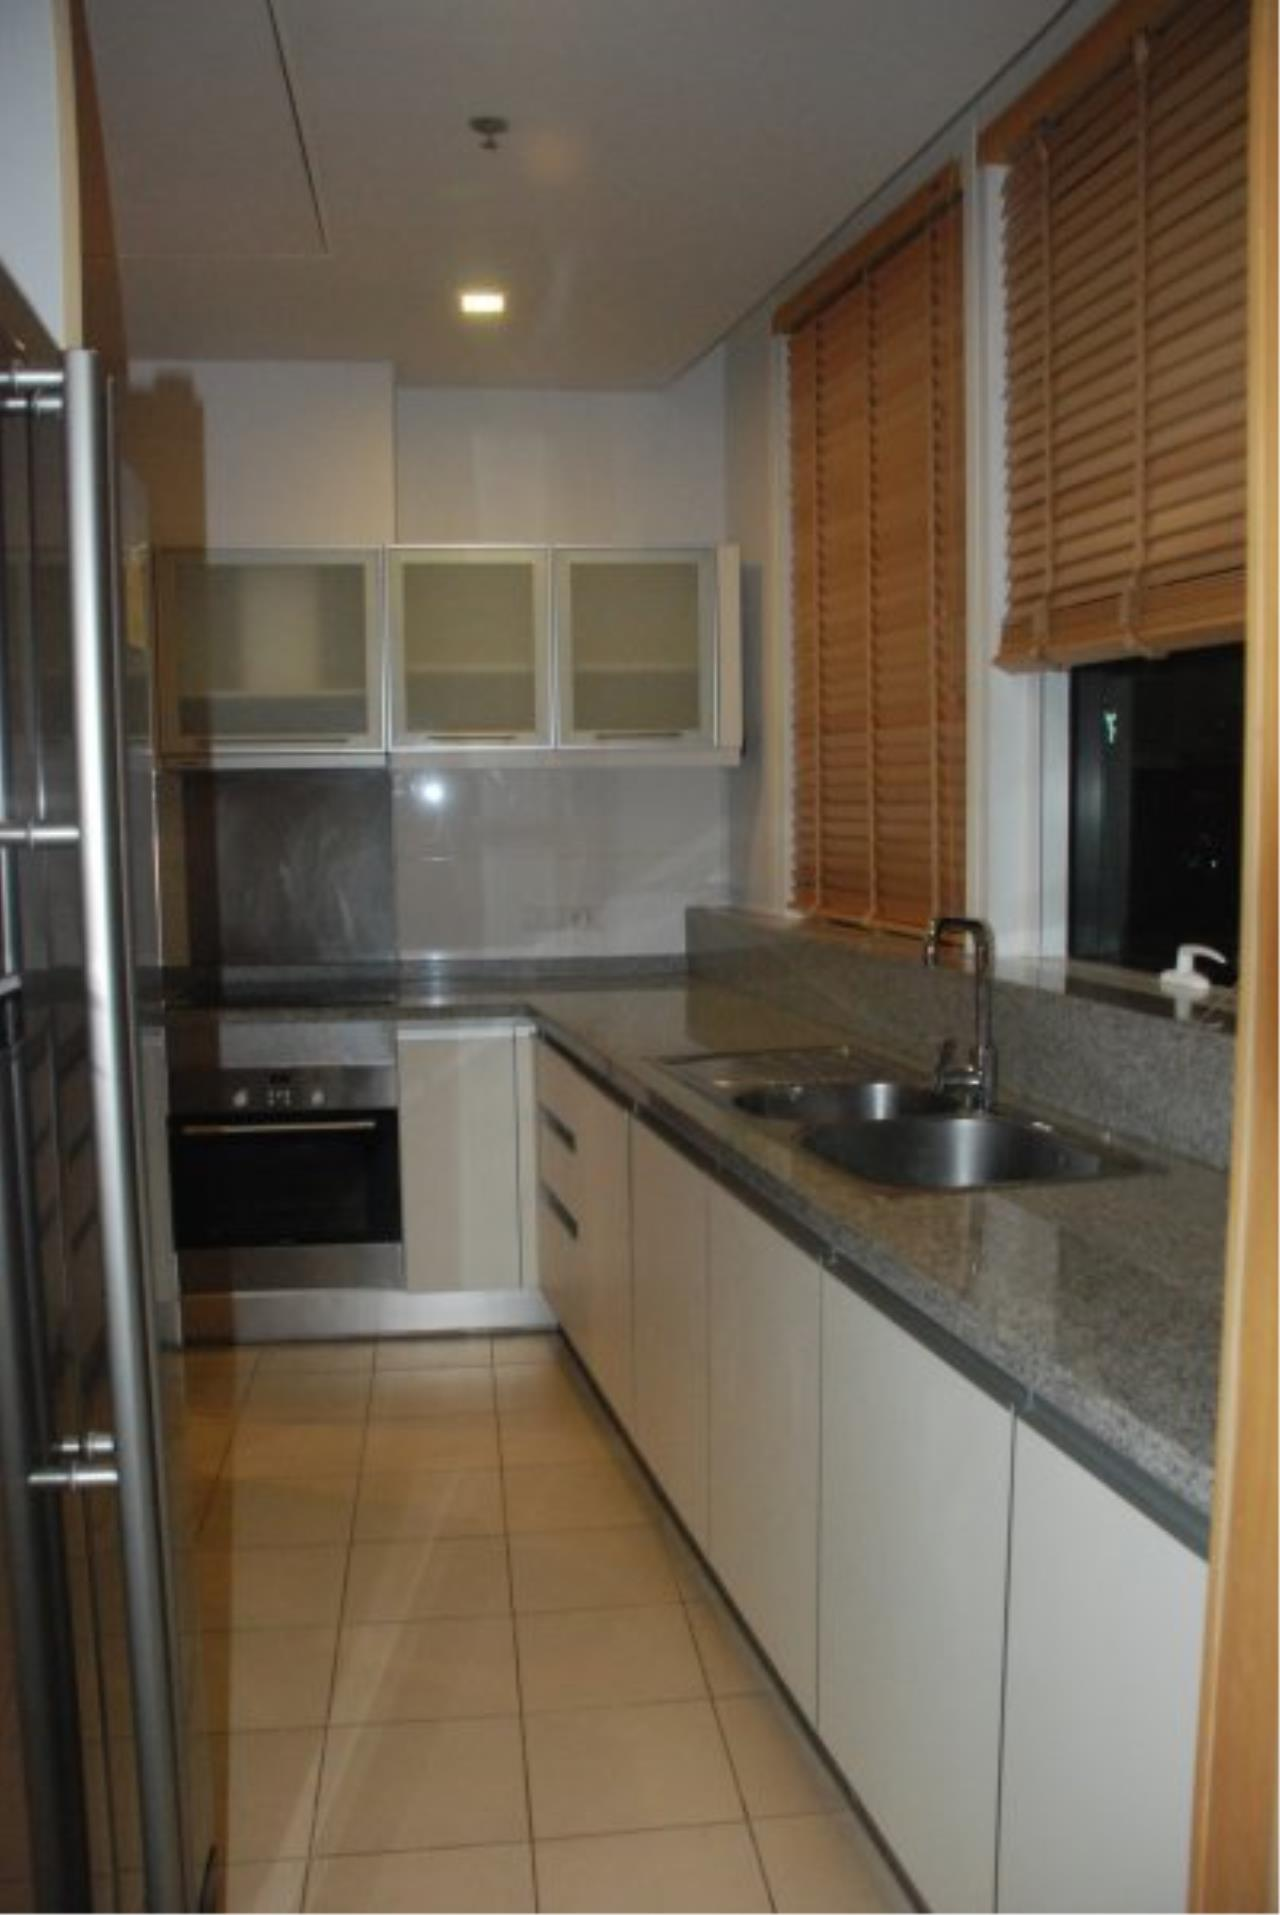 Piri Property Agency's Spacious 2 Bedrooms in the Millennium Residence for rent on high floor 10